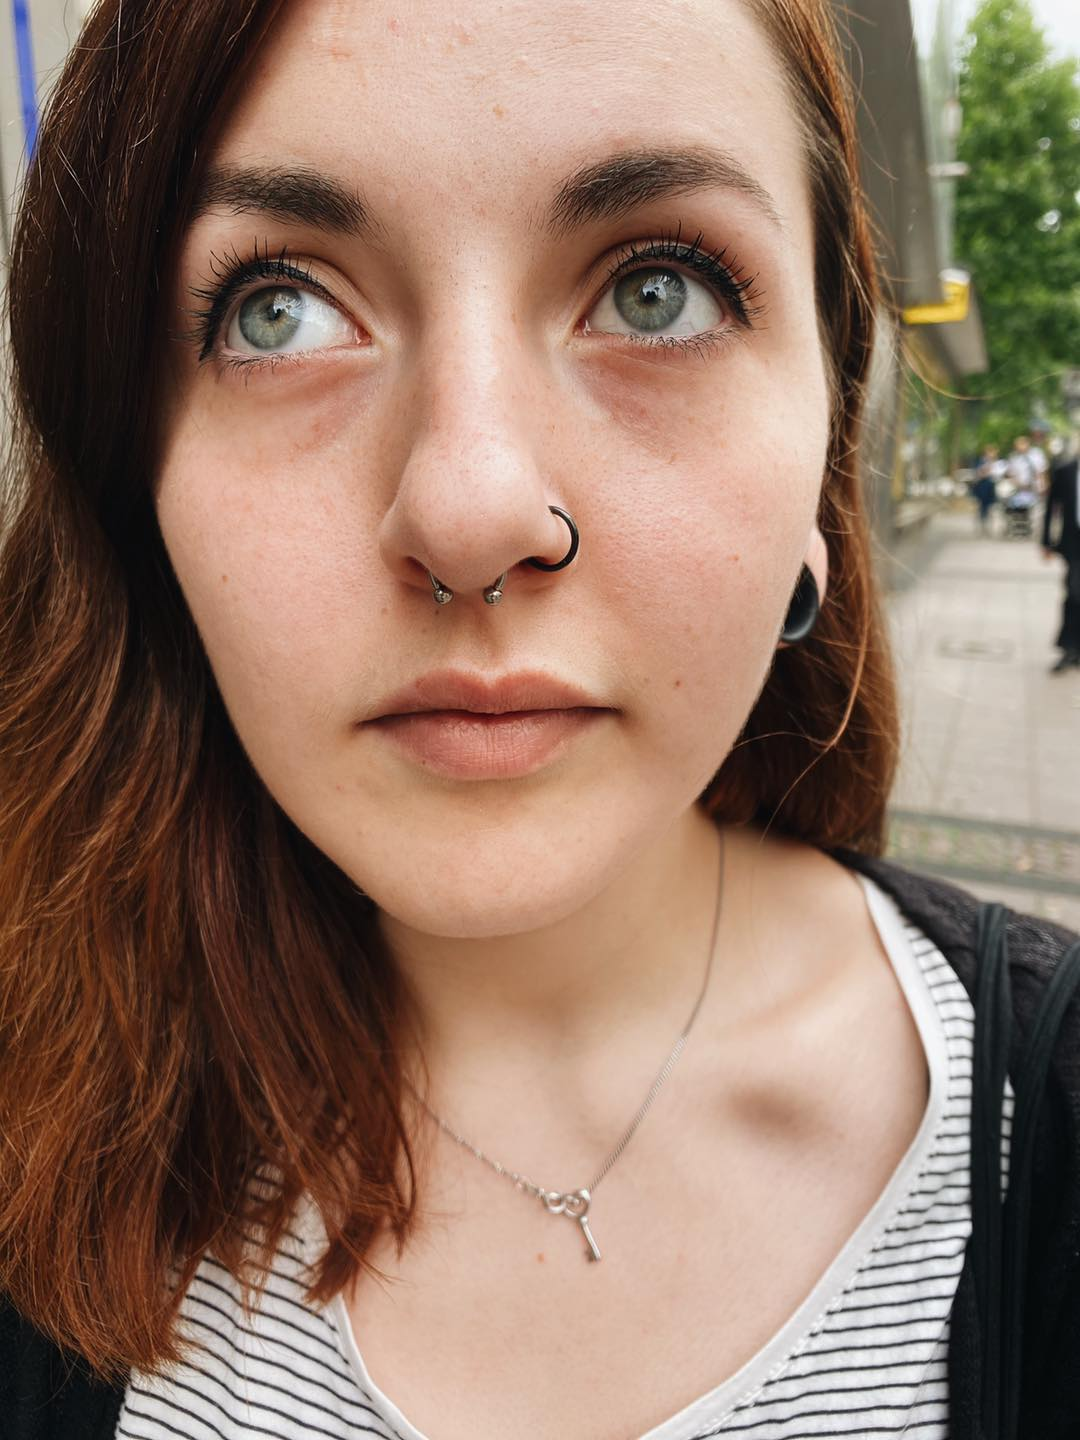 IT'S-SEPTUM-TIME.xx&oh=72f58c300281567a79ef075a1776677f&oe=5FBCD288